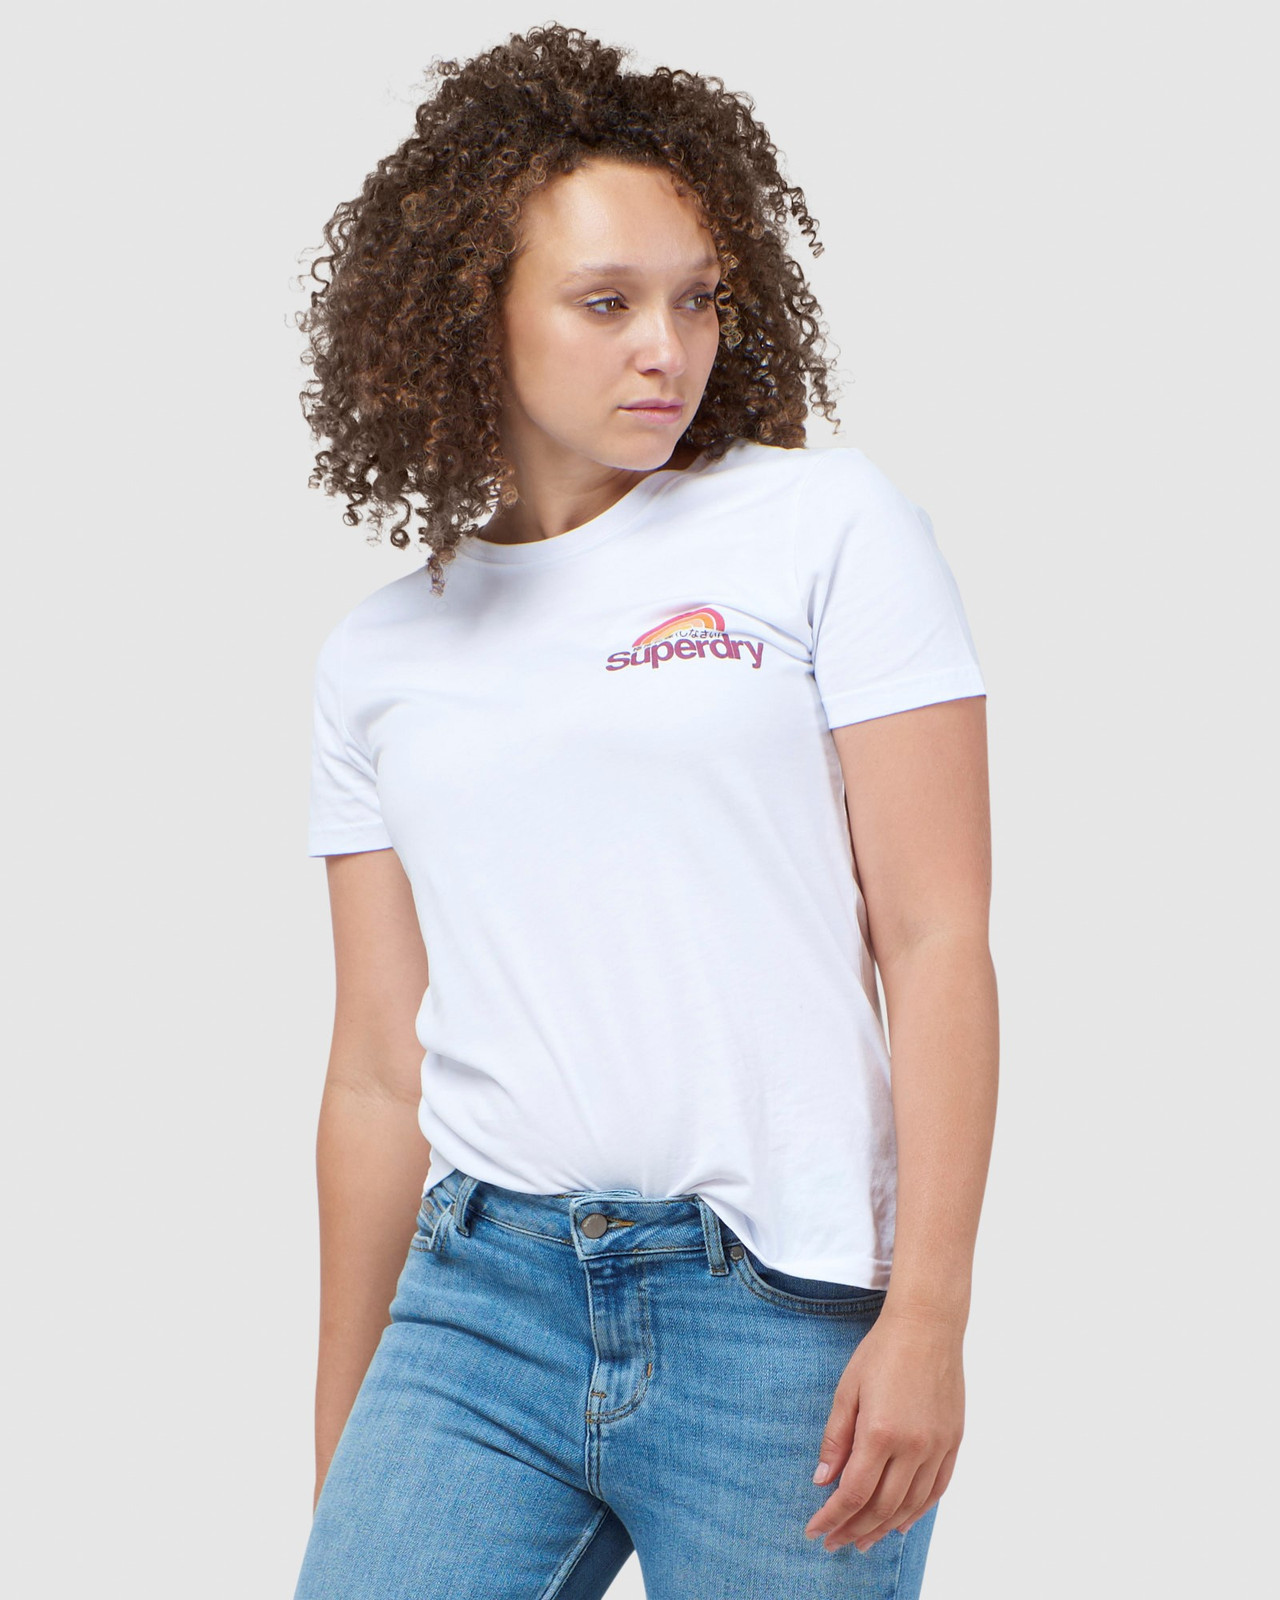 Superdry Womens CL WILDERNESS TEE White Printed T Shirts 0